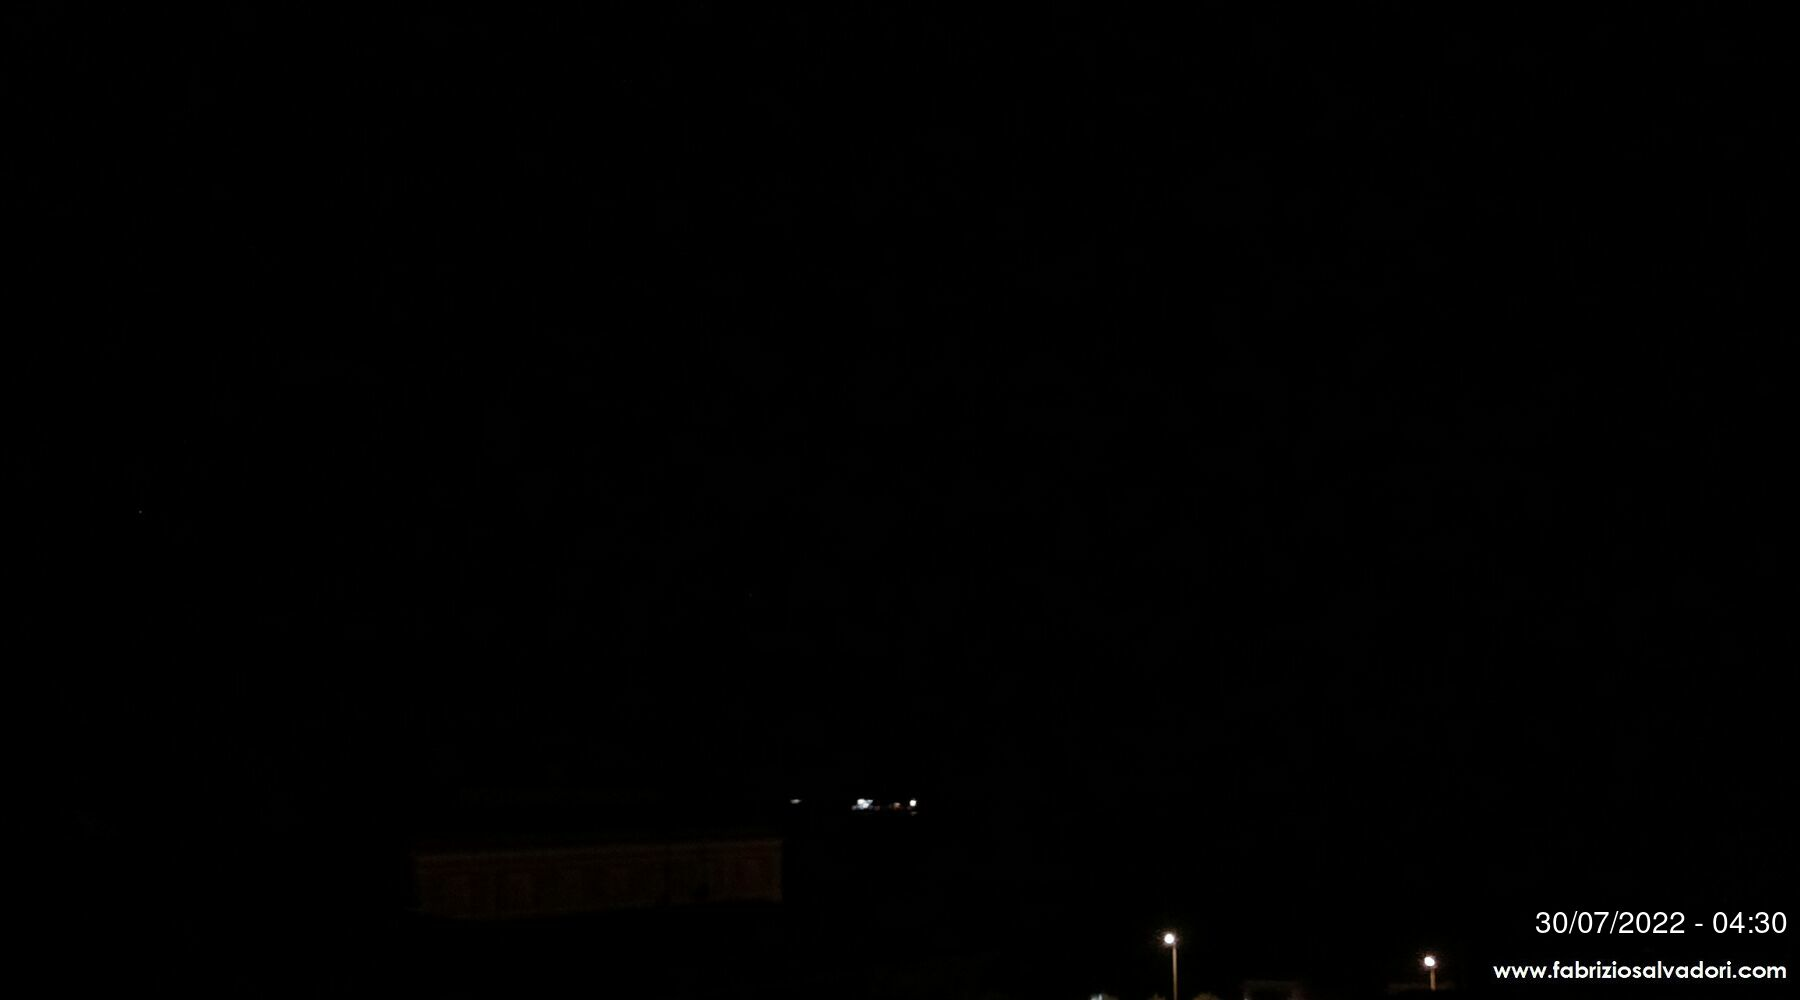 Livorno webcam - Livorno webcam, Tuscany, Livorno